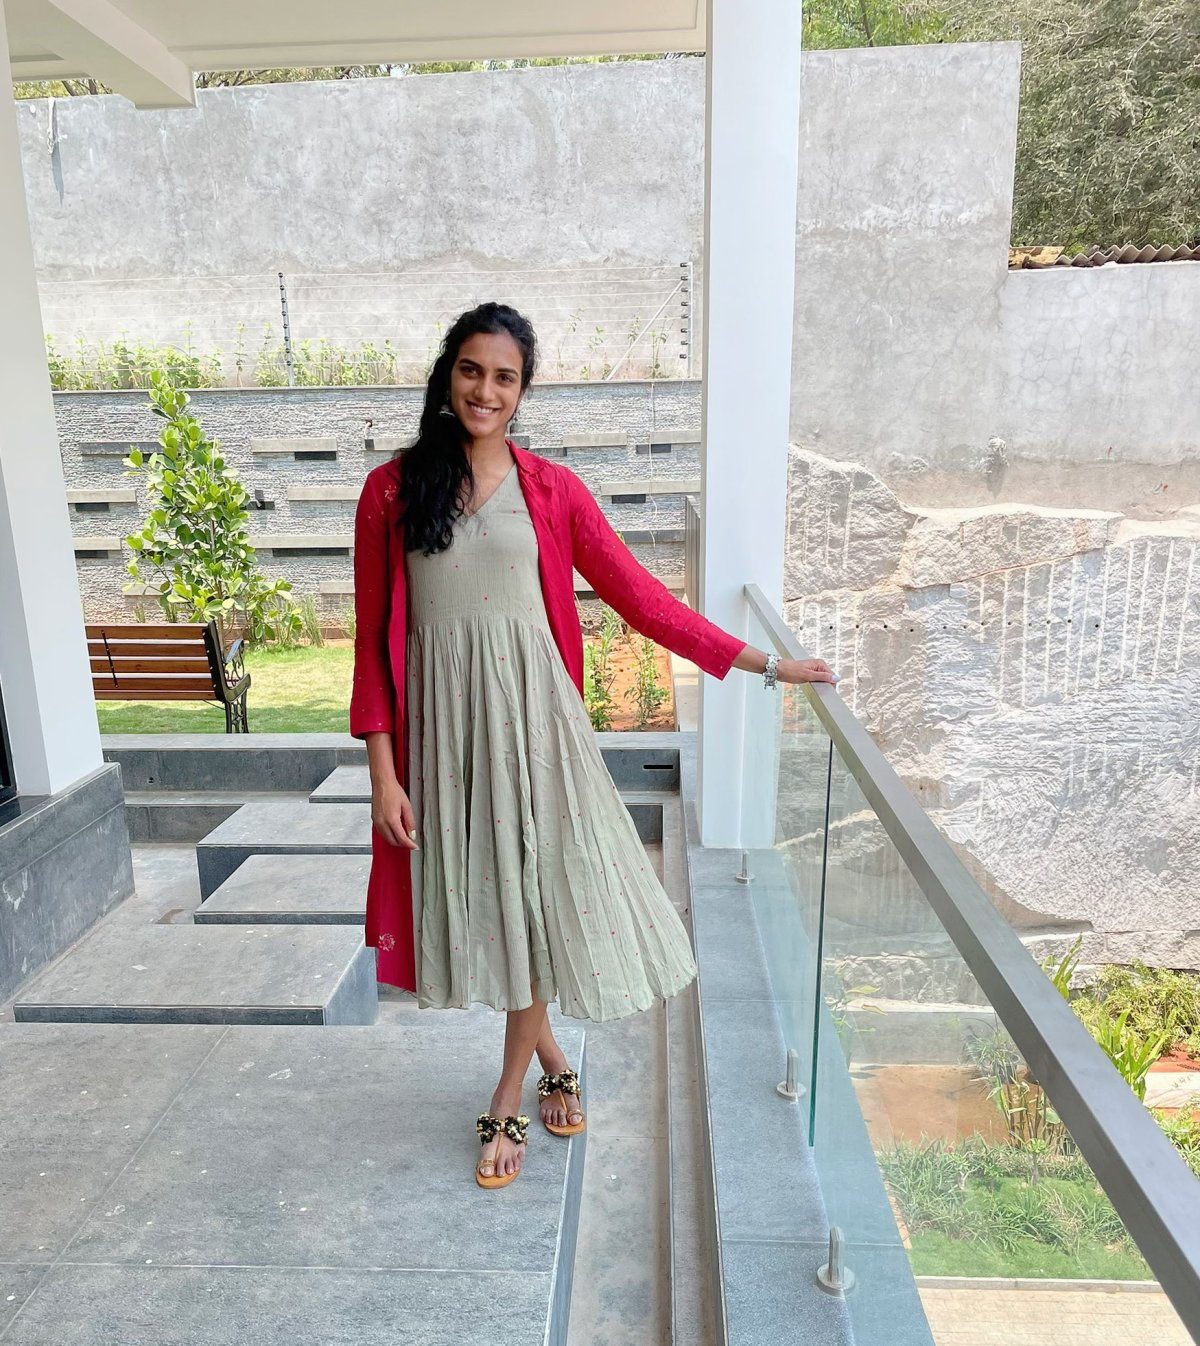 India's medal hope for Tokyo Olympics, PV Sindhu turns 26